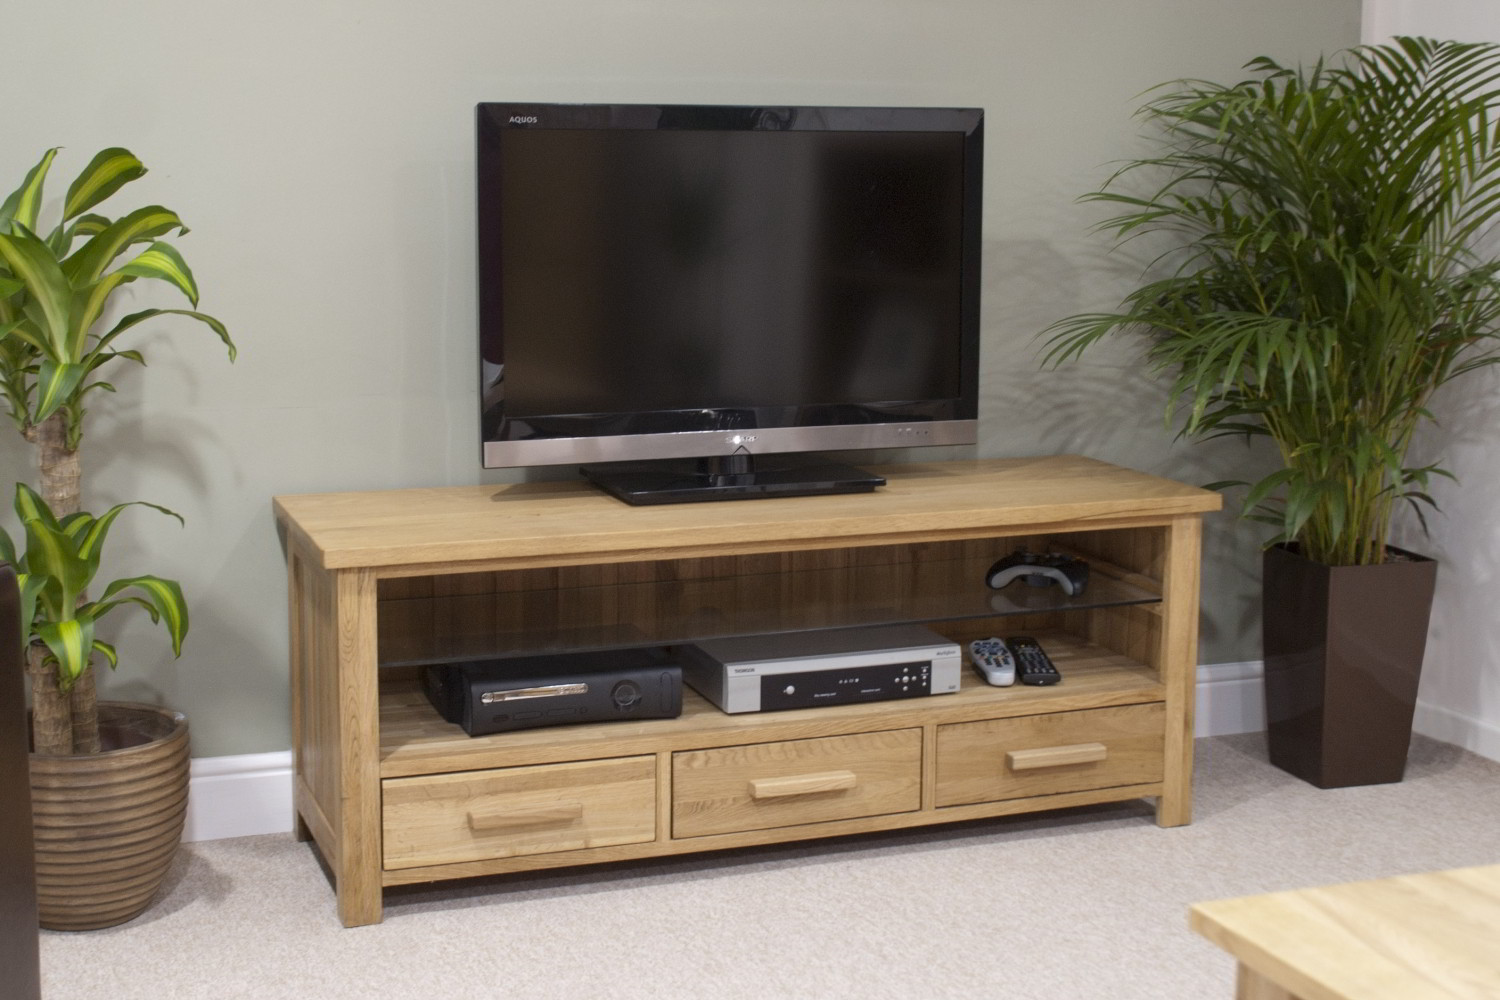 Eton solid oak living room furniture widescreen tv cabinet - Dresser as tv stand in living room ...